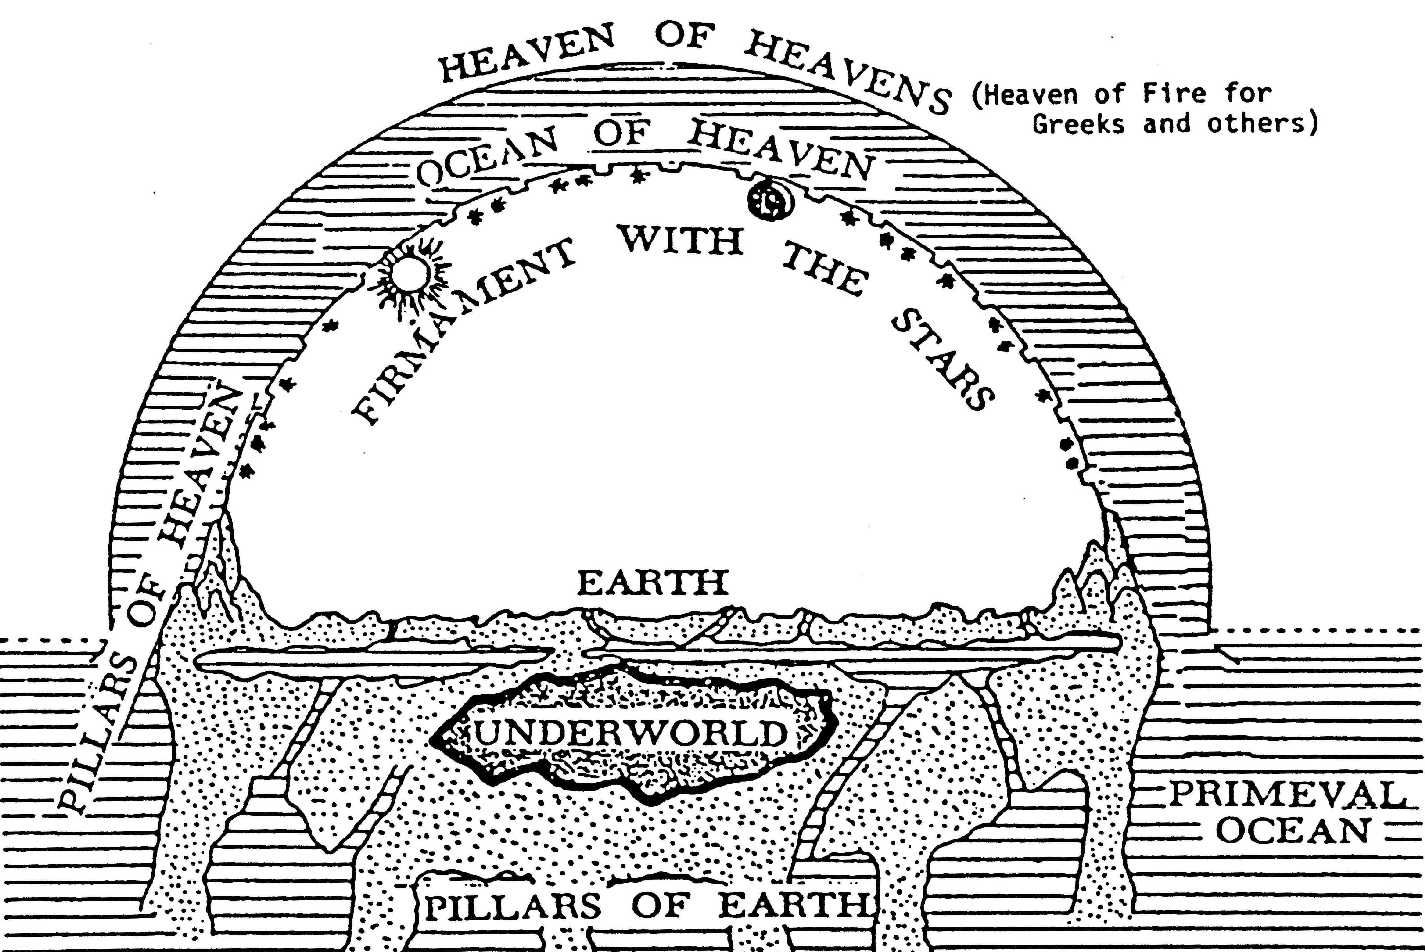 A COMMON COSMOLOGY OF THE ANCIENT WORLD - Hebrew cosmology - pillars of heaven